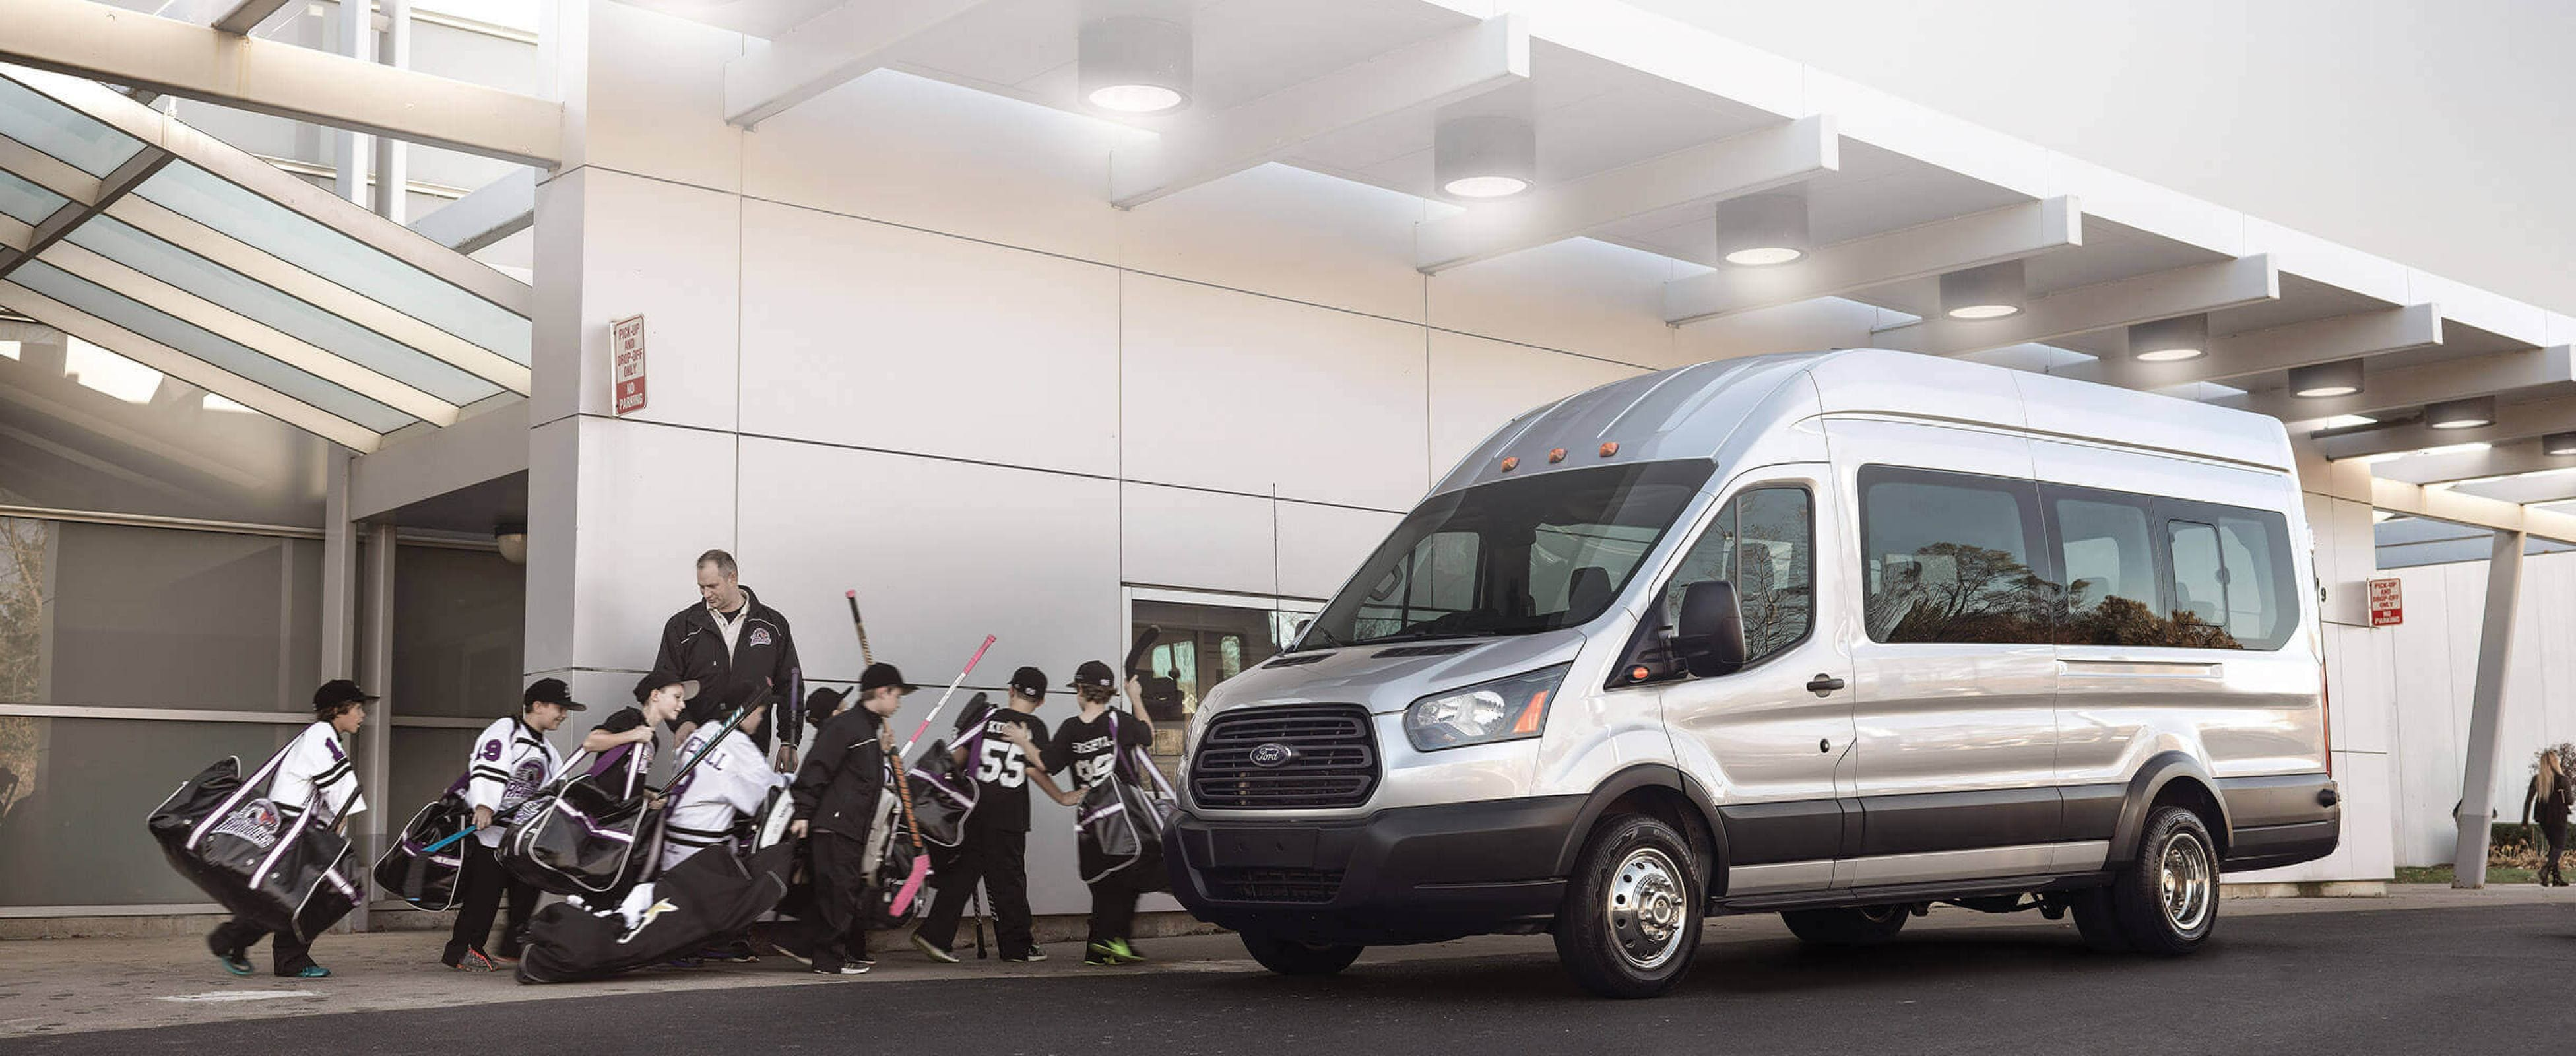 12 passenger van rental ford transit or similar budget rent a car 12 passenger van rental ford transit